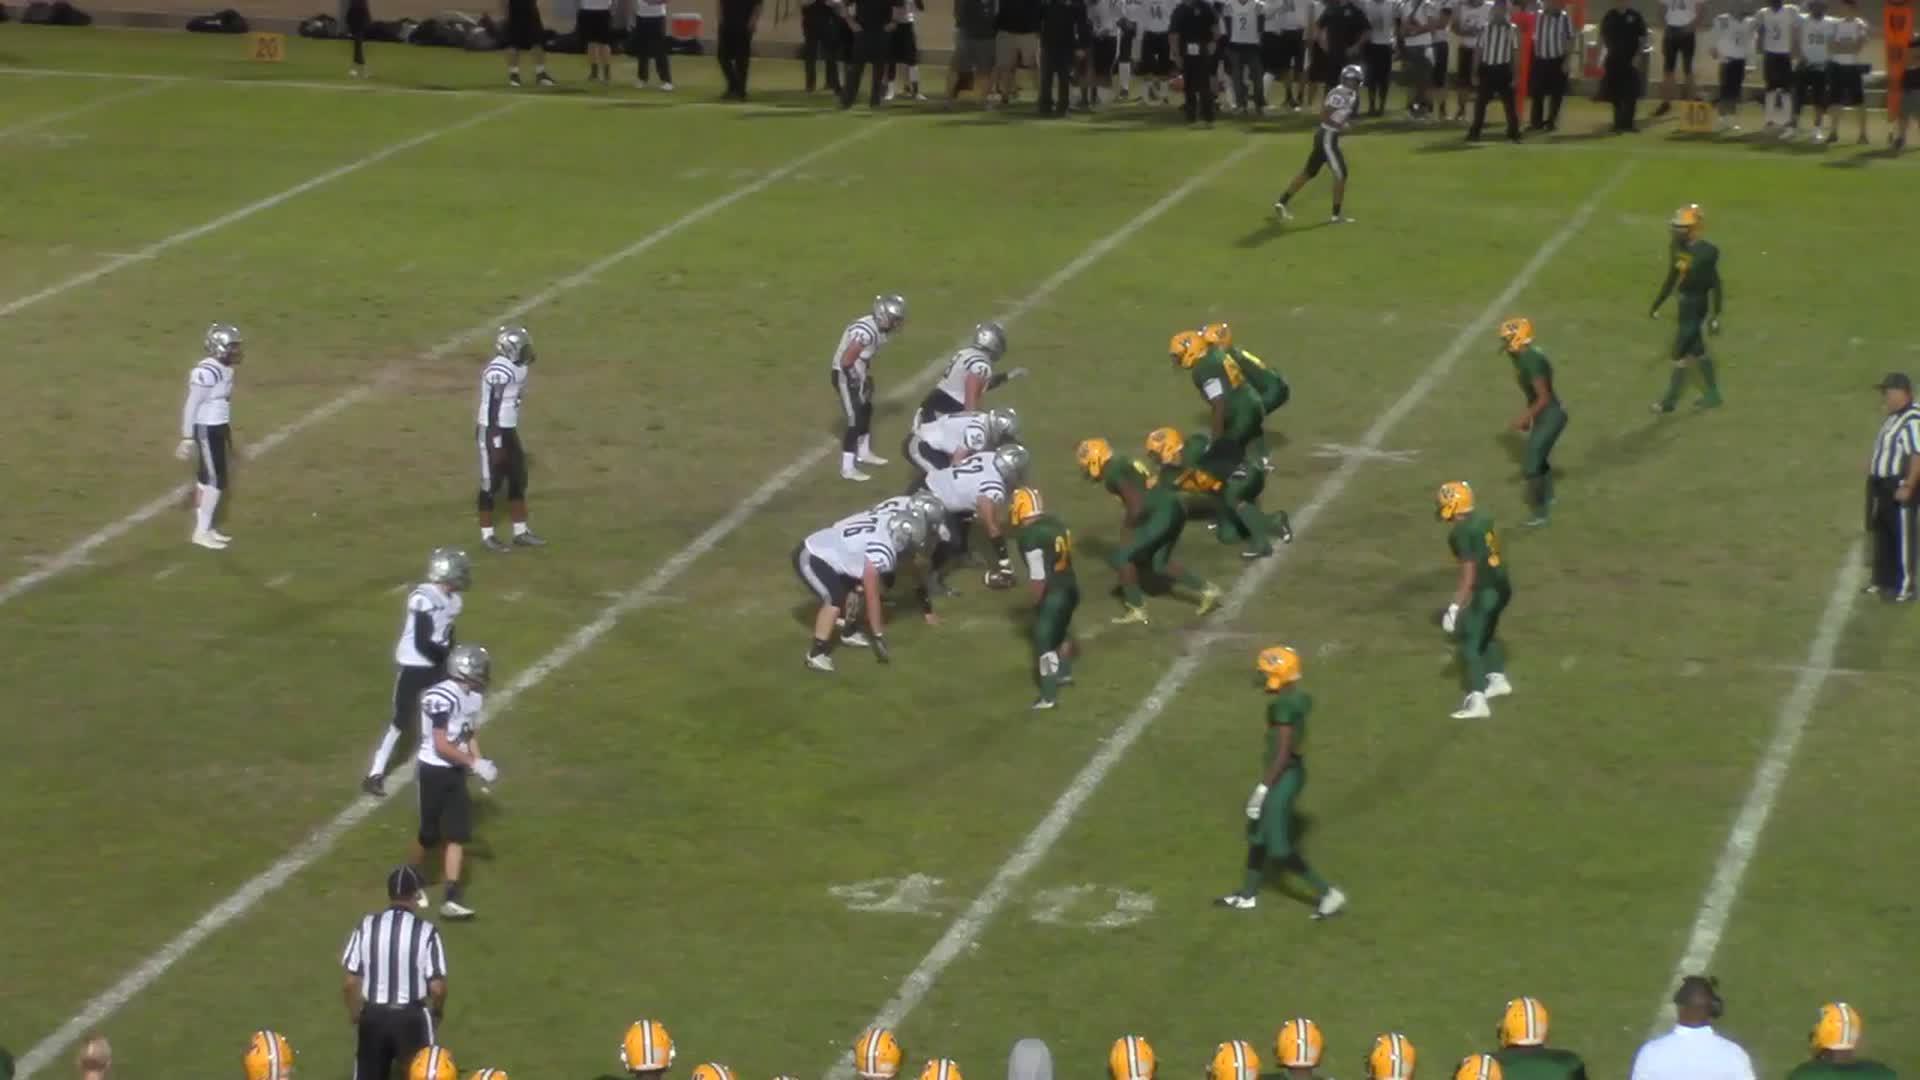 Stockdale High School Game Film Bakersfield California Page 1